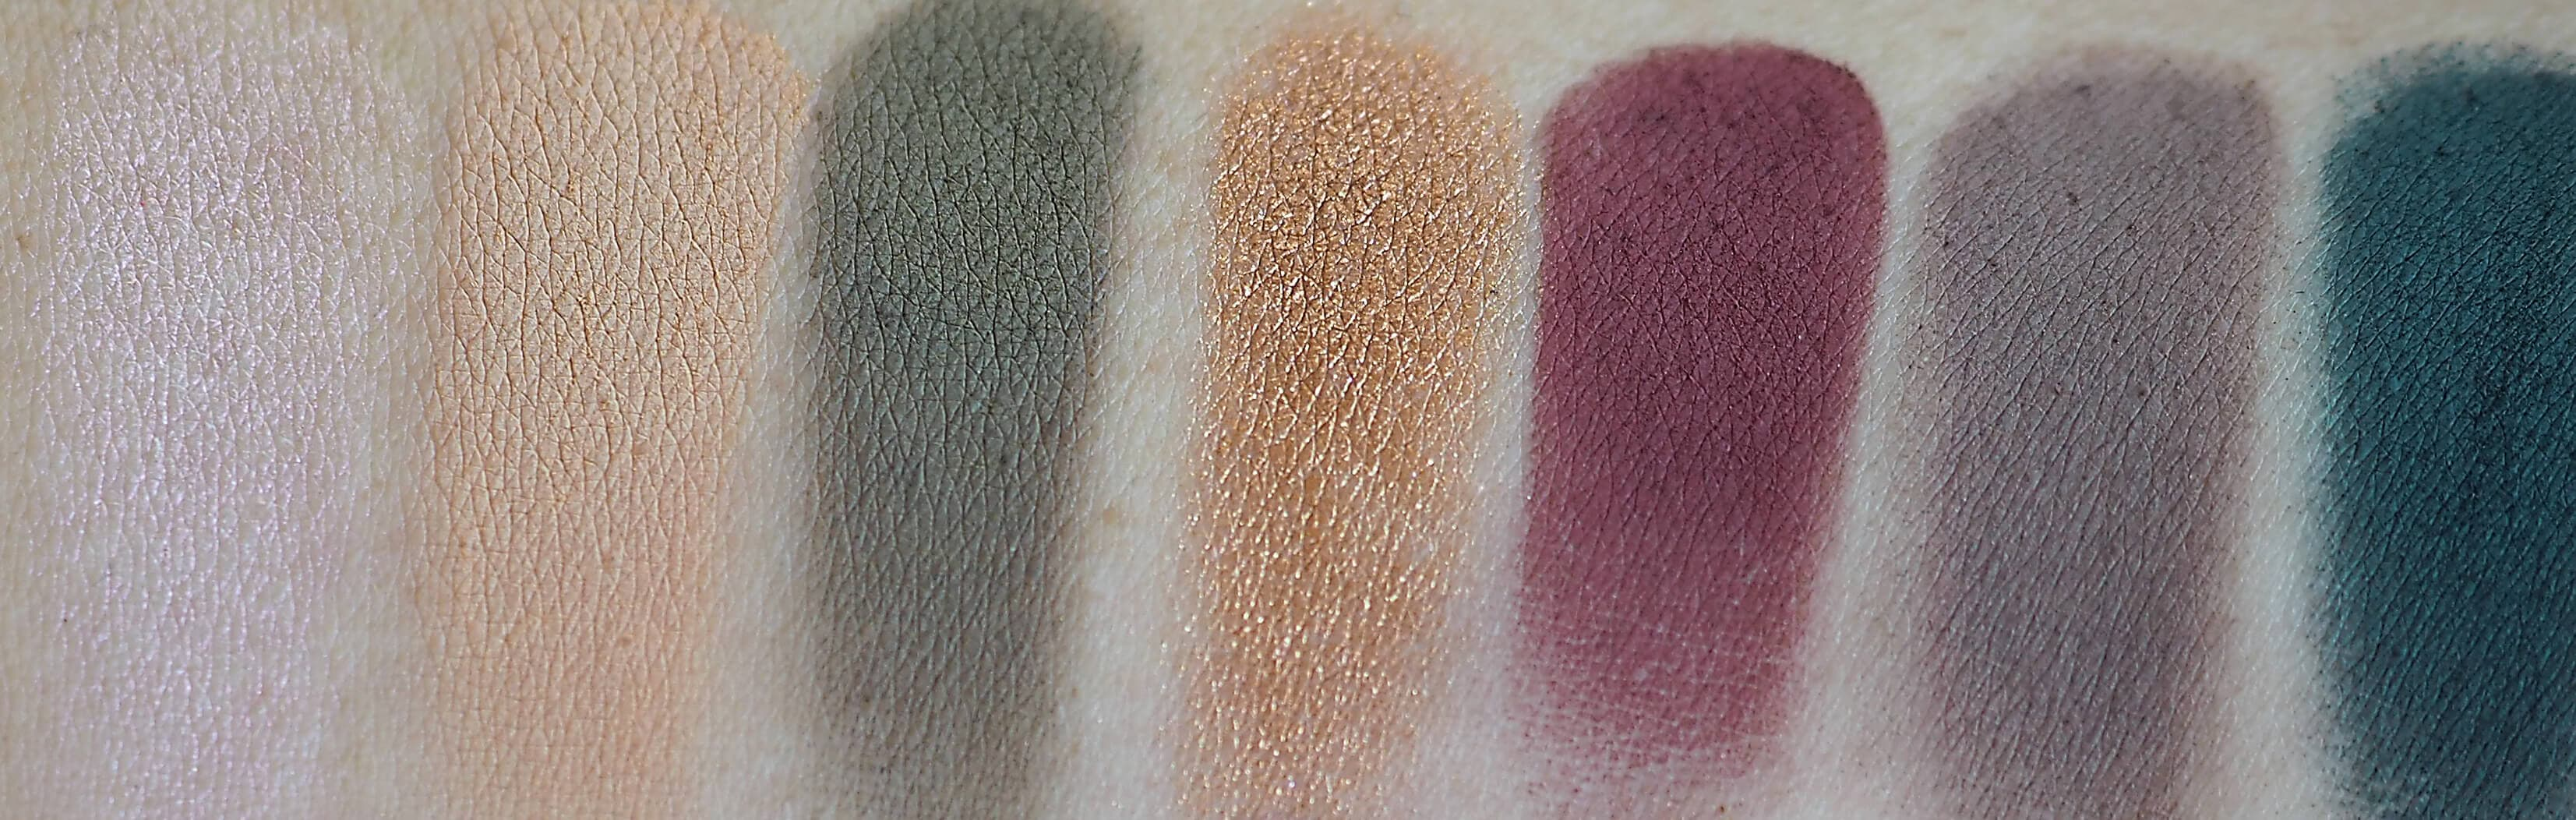 swatches SUBCULTURE EYESHADOW PALETTE